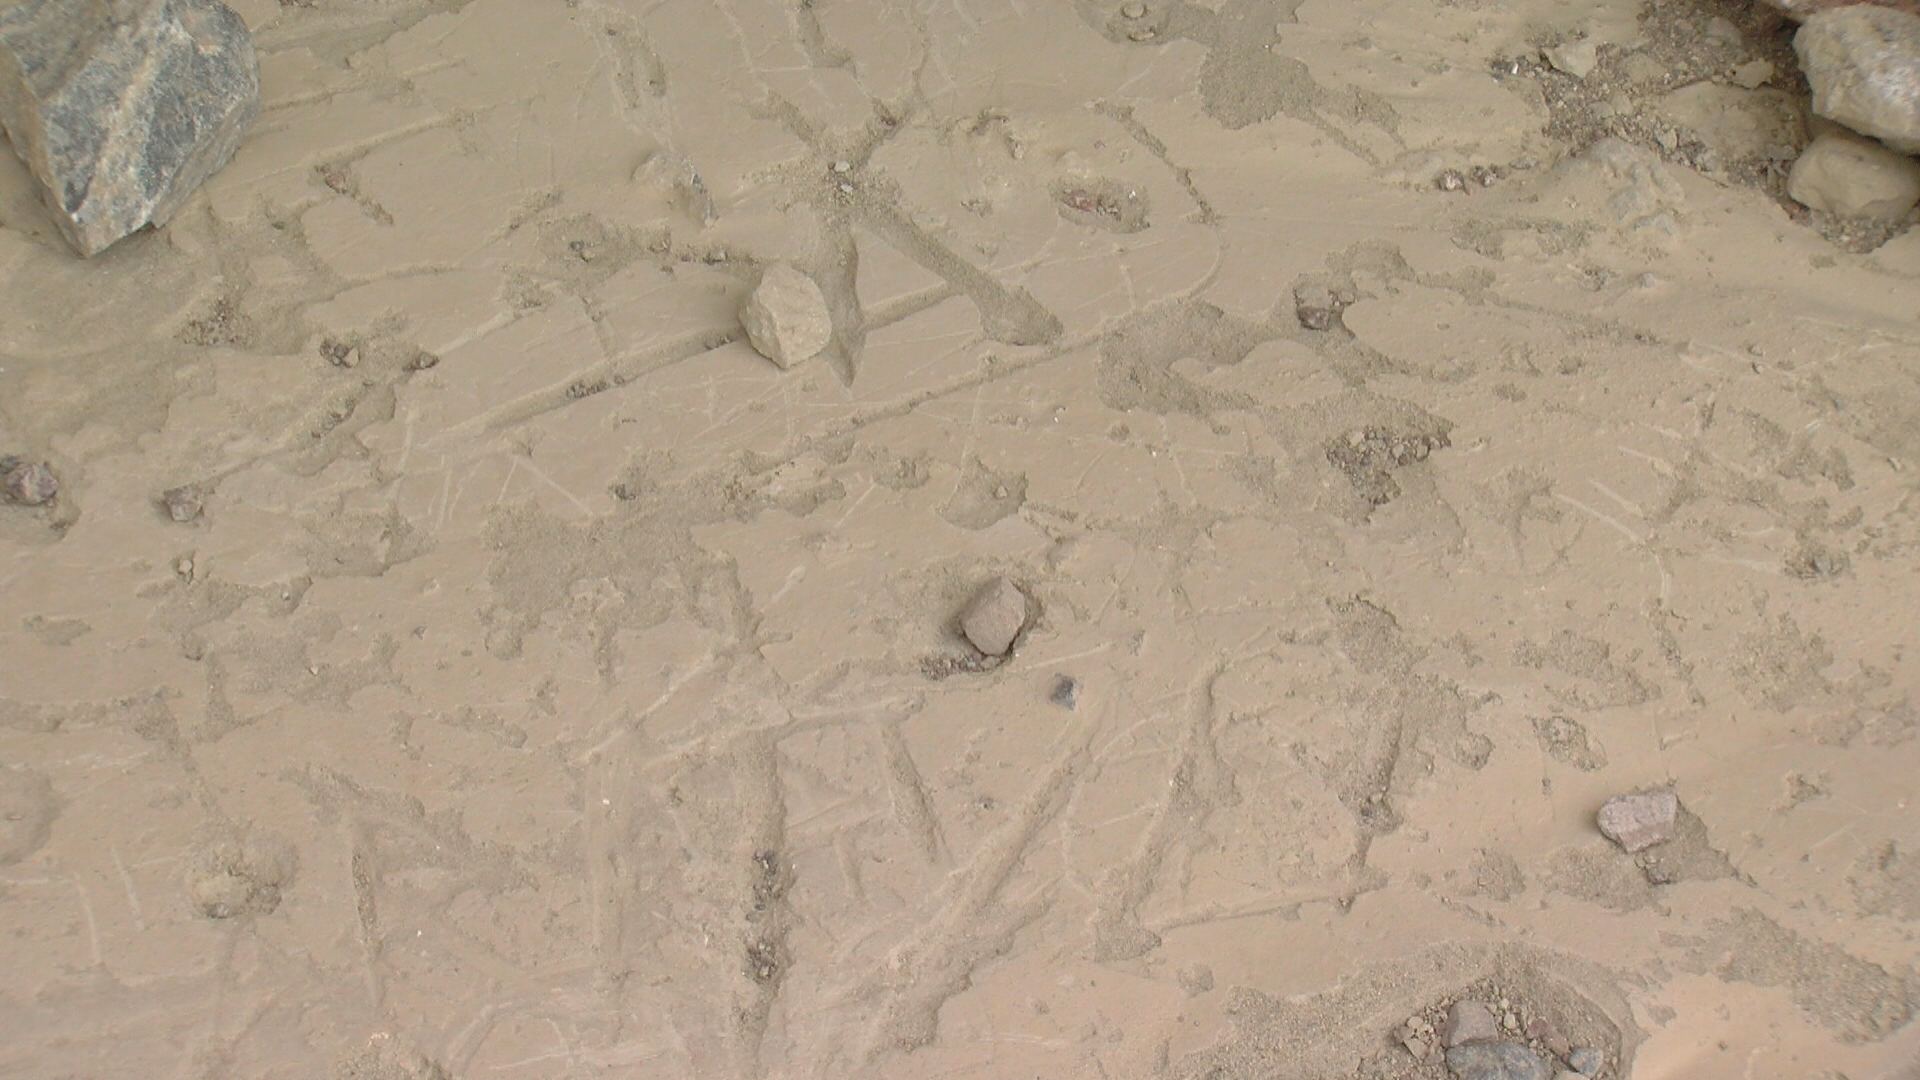 Despite a crackdown, Death Valley is attracting an unwanted type of tourist. See the damage … and the plan to stop the vandals. (KSNV)